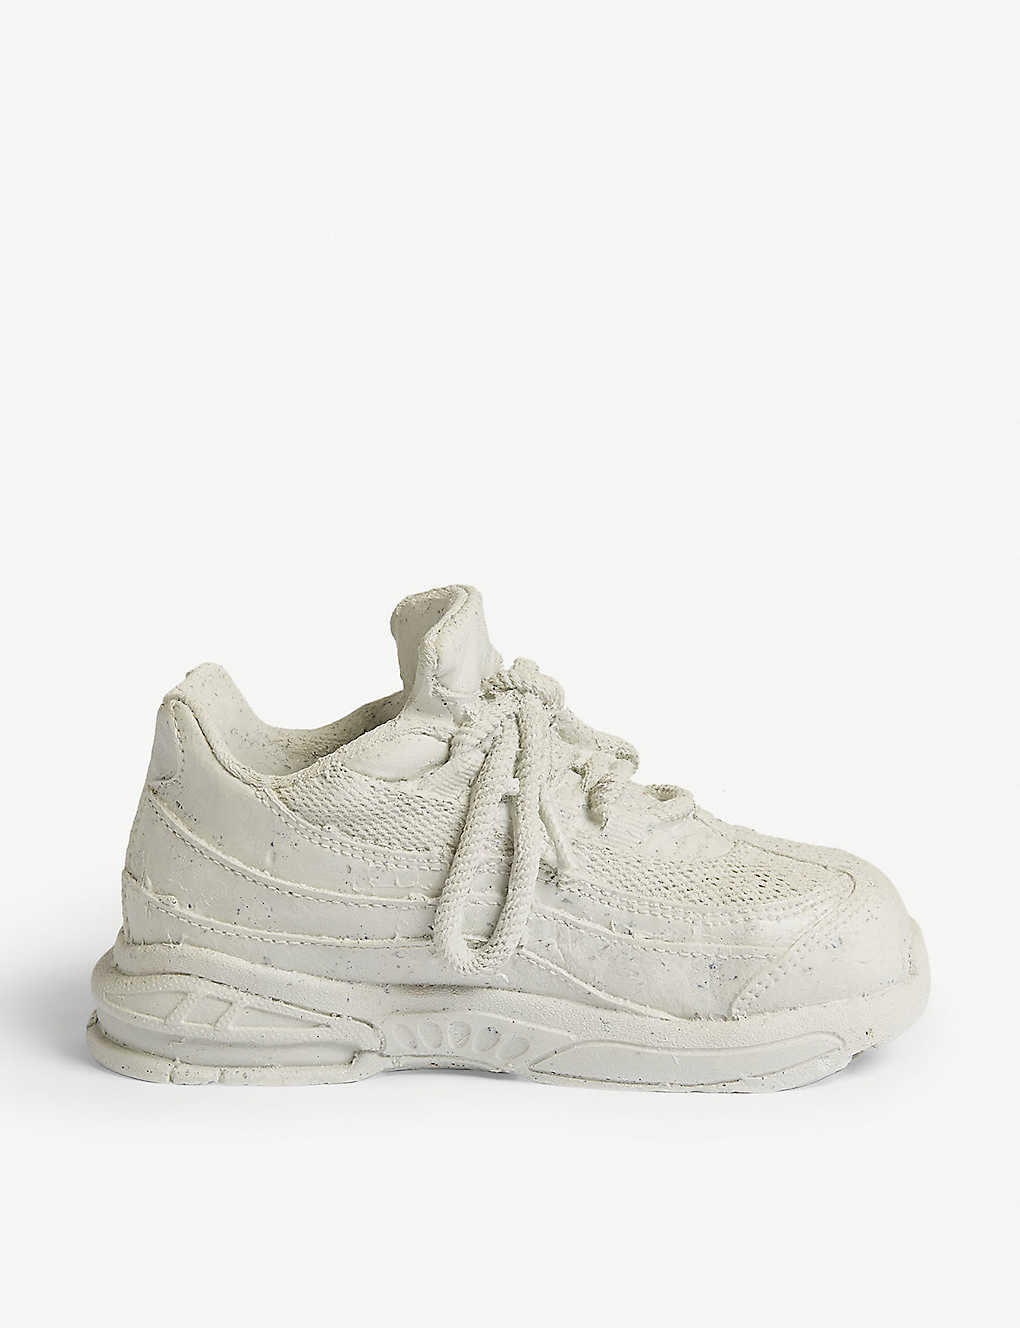 18cca1a61d BODEGA ROSE - Nike Air Max 95 trainer planter | Selfridges.com